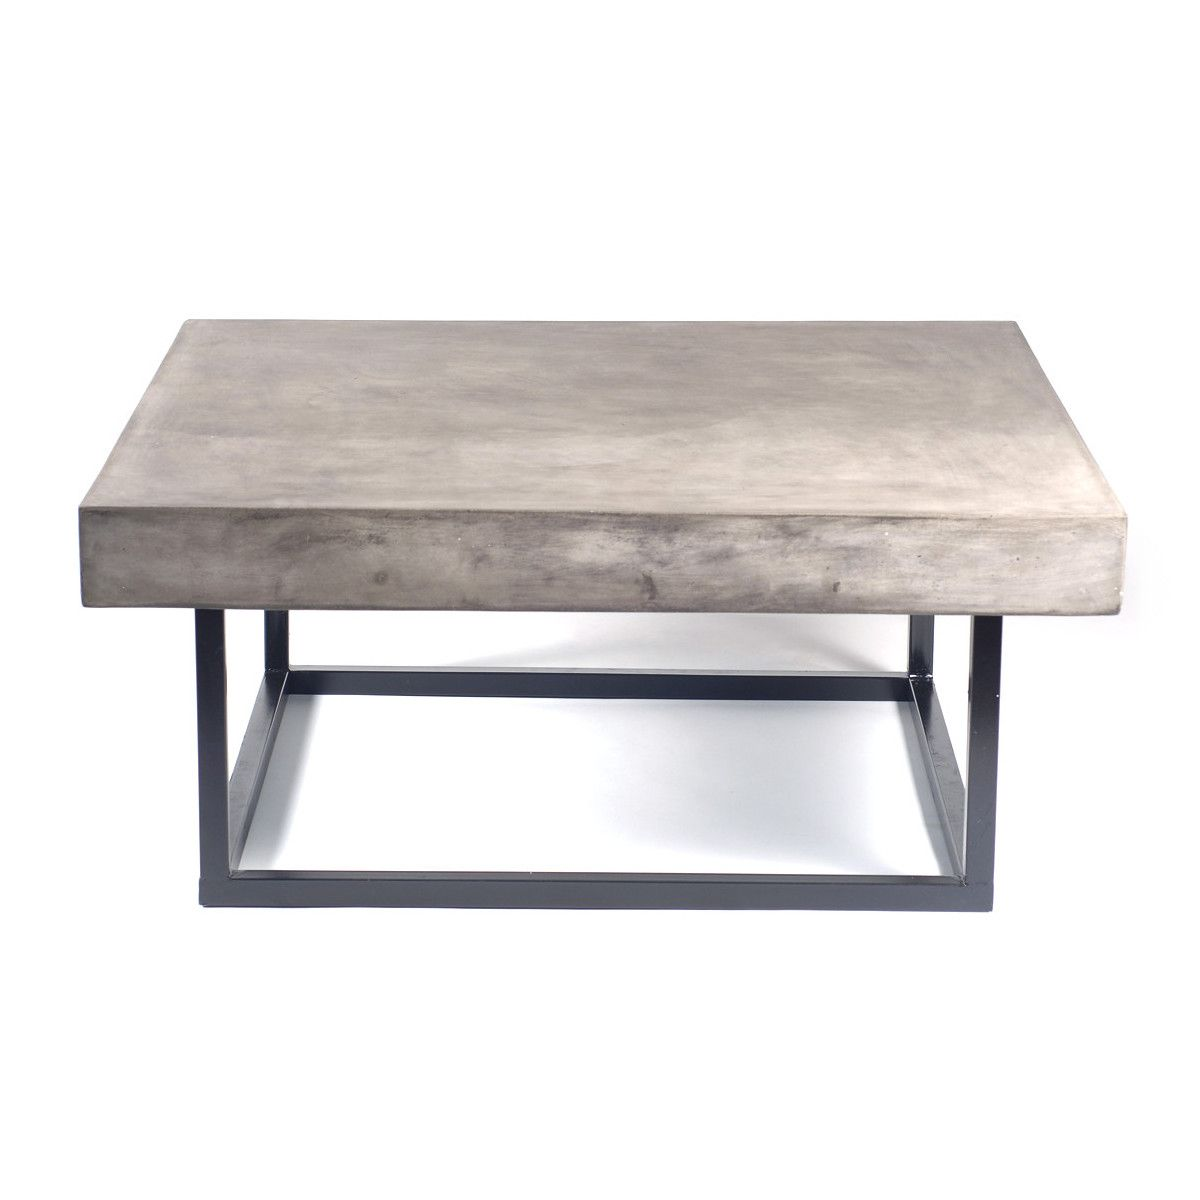 "Mia Concrete Coffee Table 1 for SV back patio 41"" square"